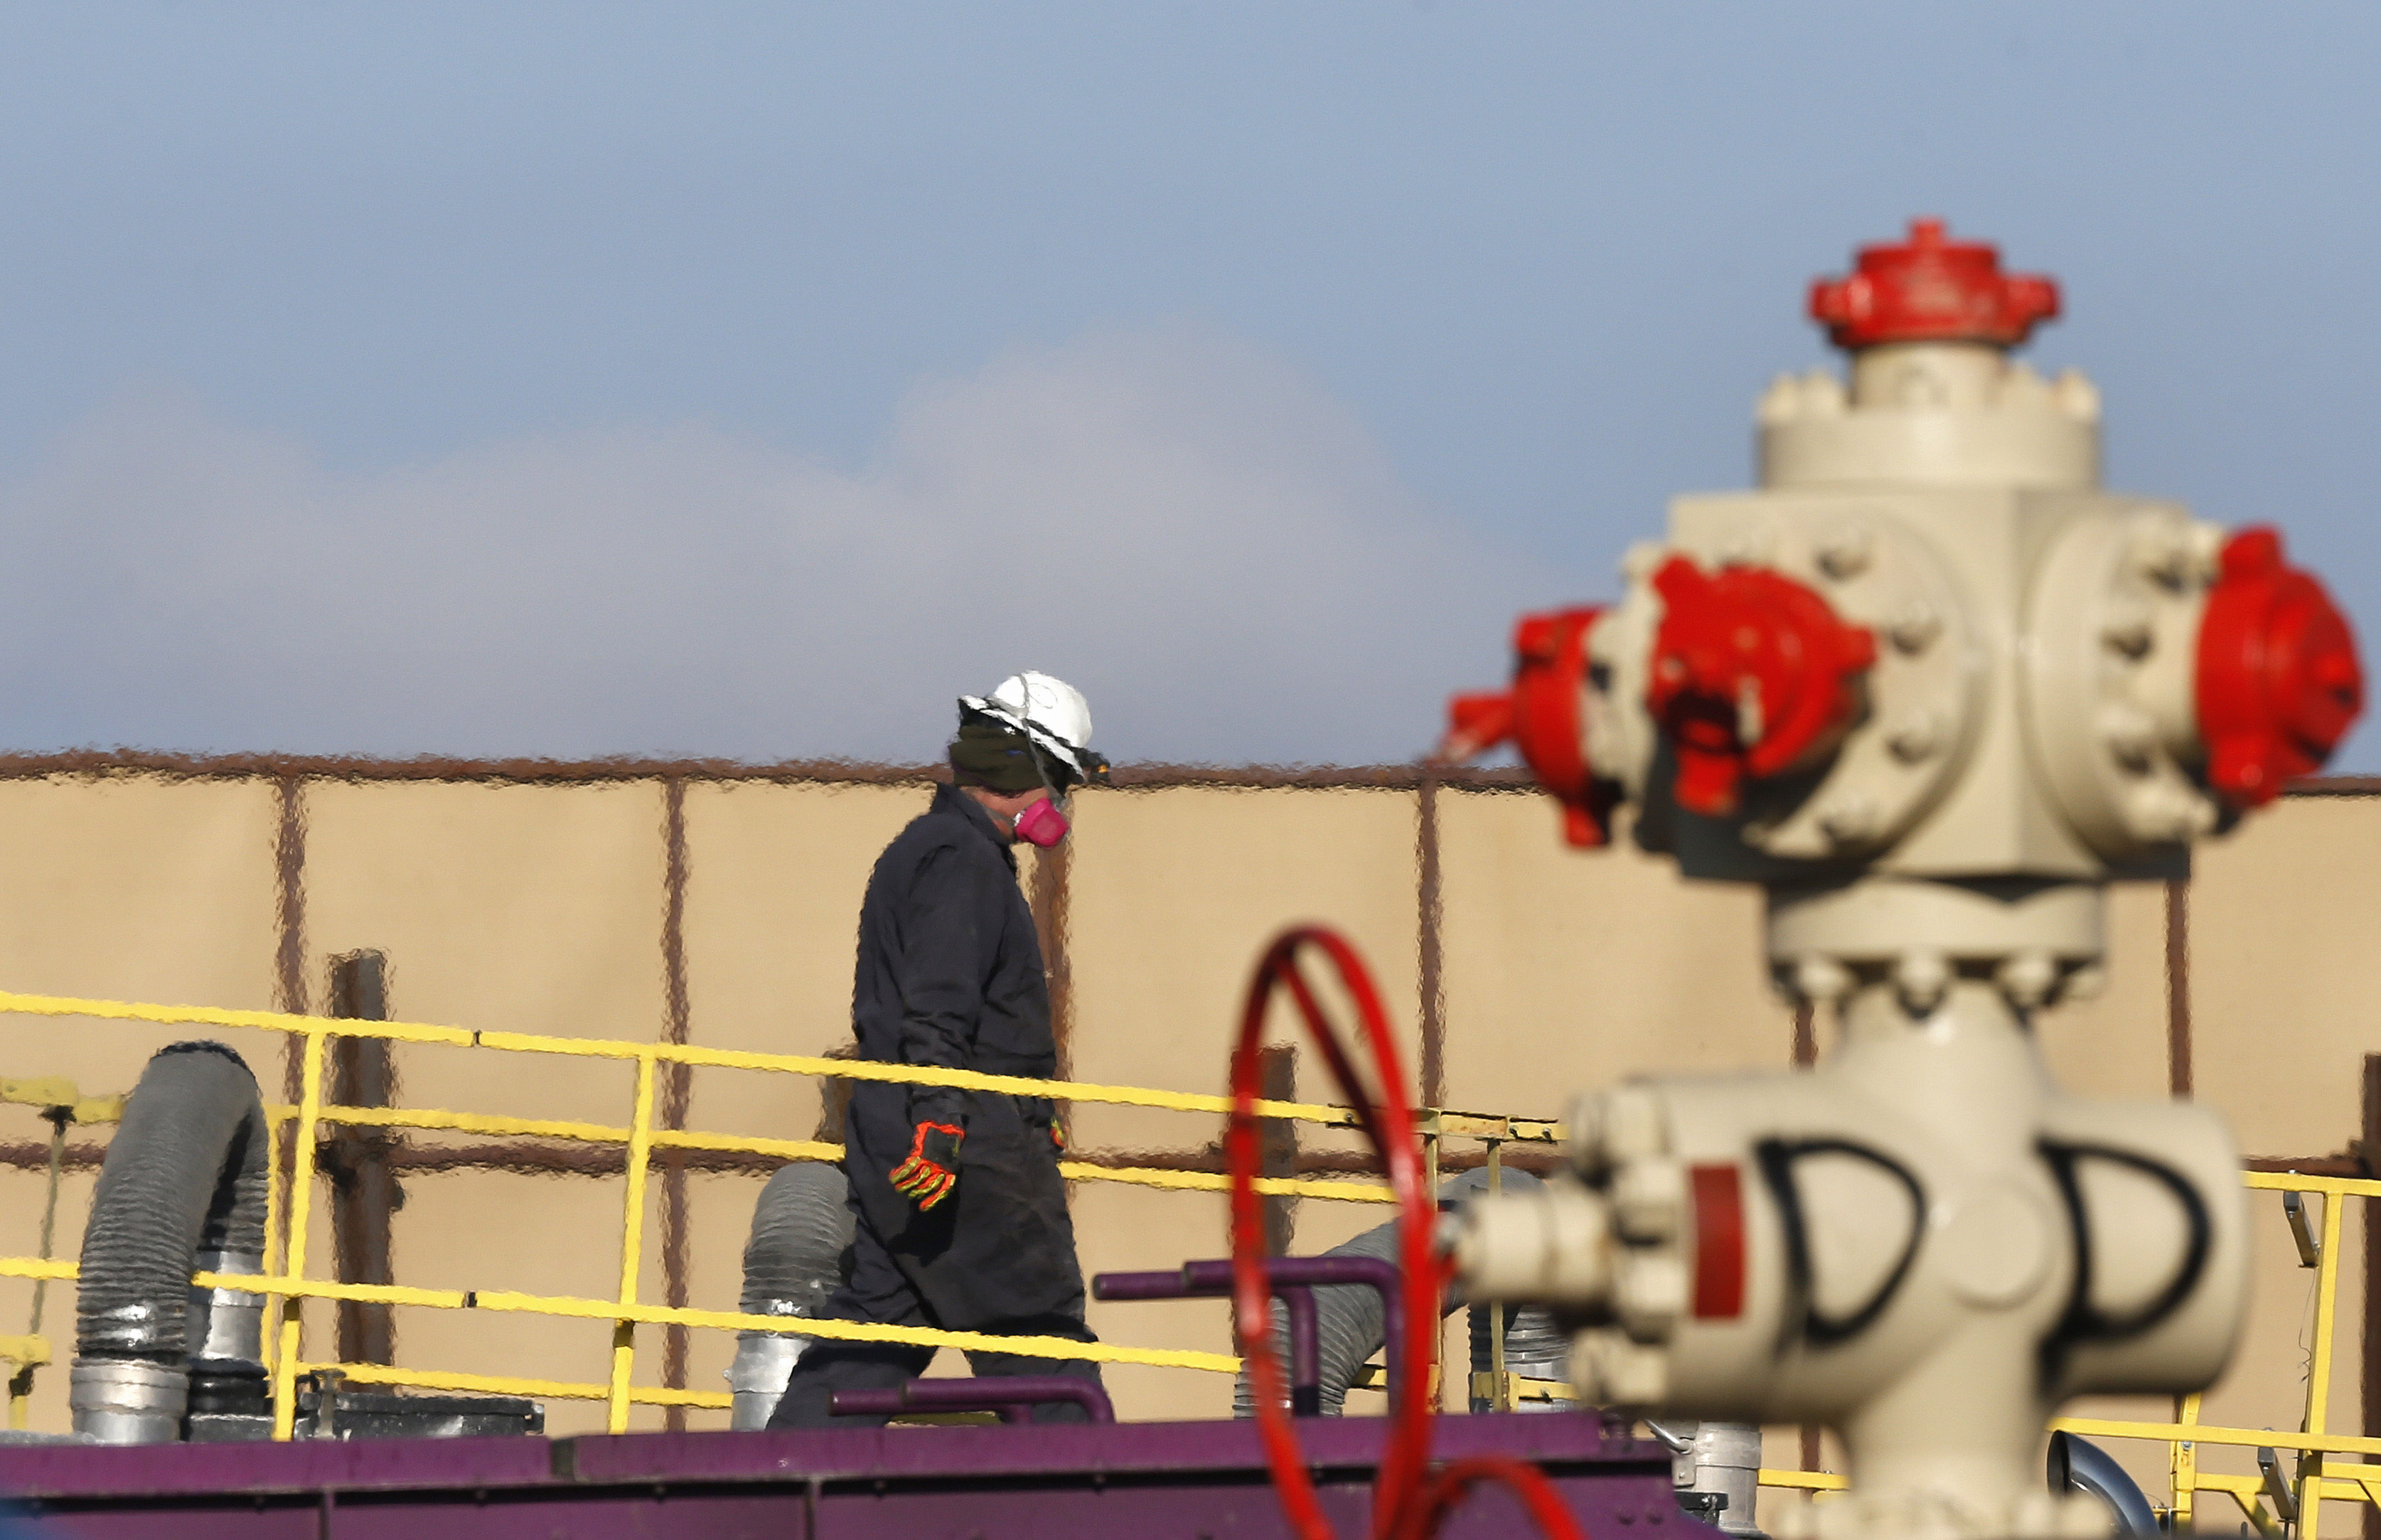 <p>In this March 25, 2014 photo, heat from machinery distorts the air as a worker watches over a hydraulic fracturing operation at an Encana Corp. oil well near Mead in Weld County, Colorado.</p>